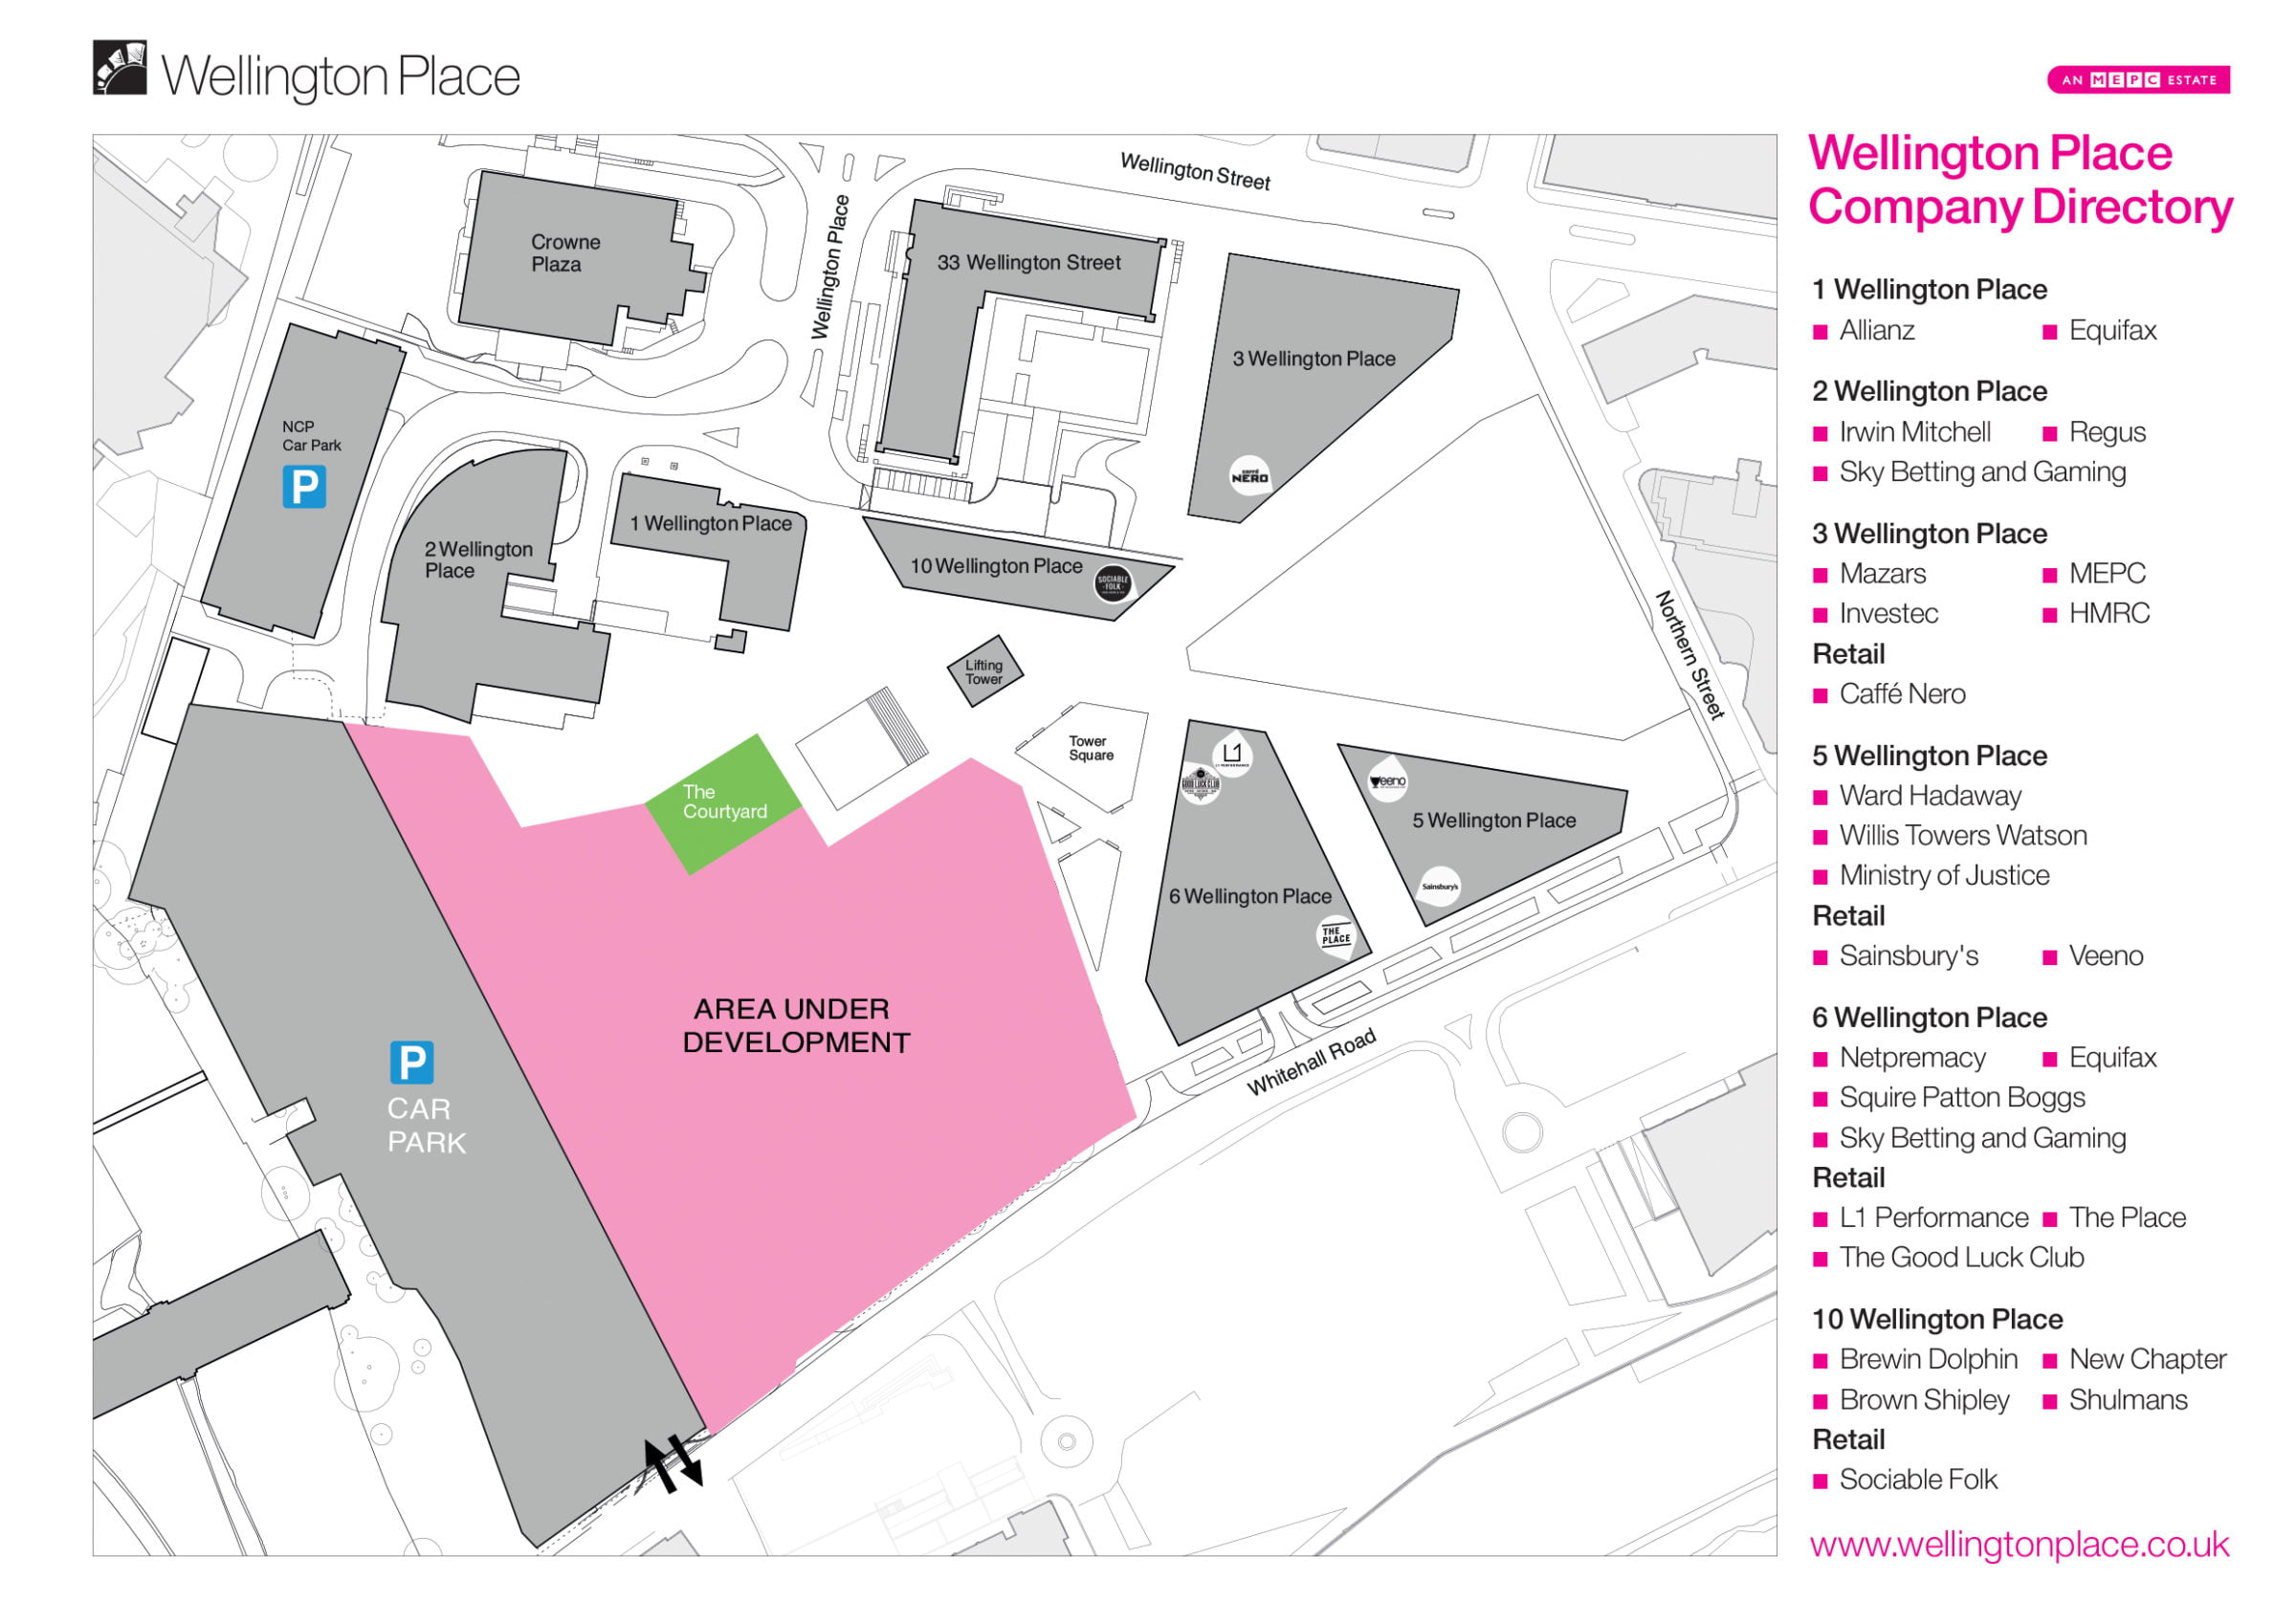 View the wellington place map